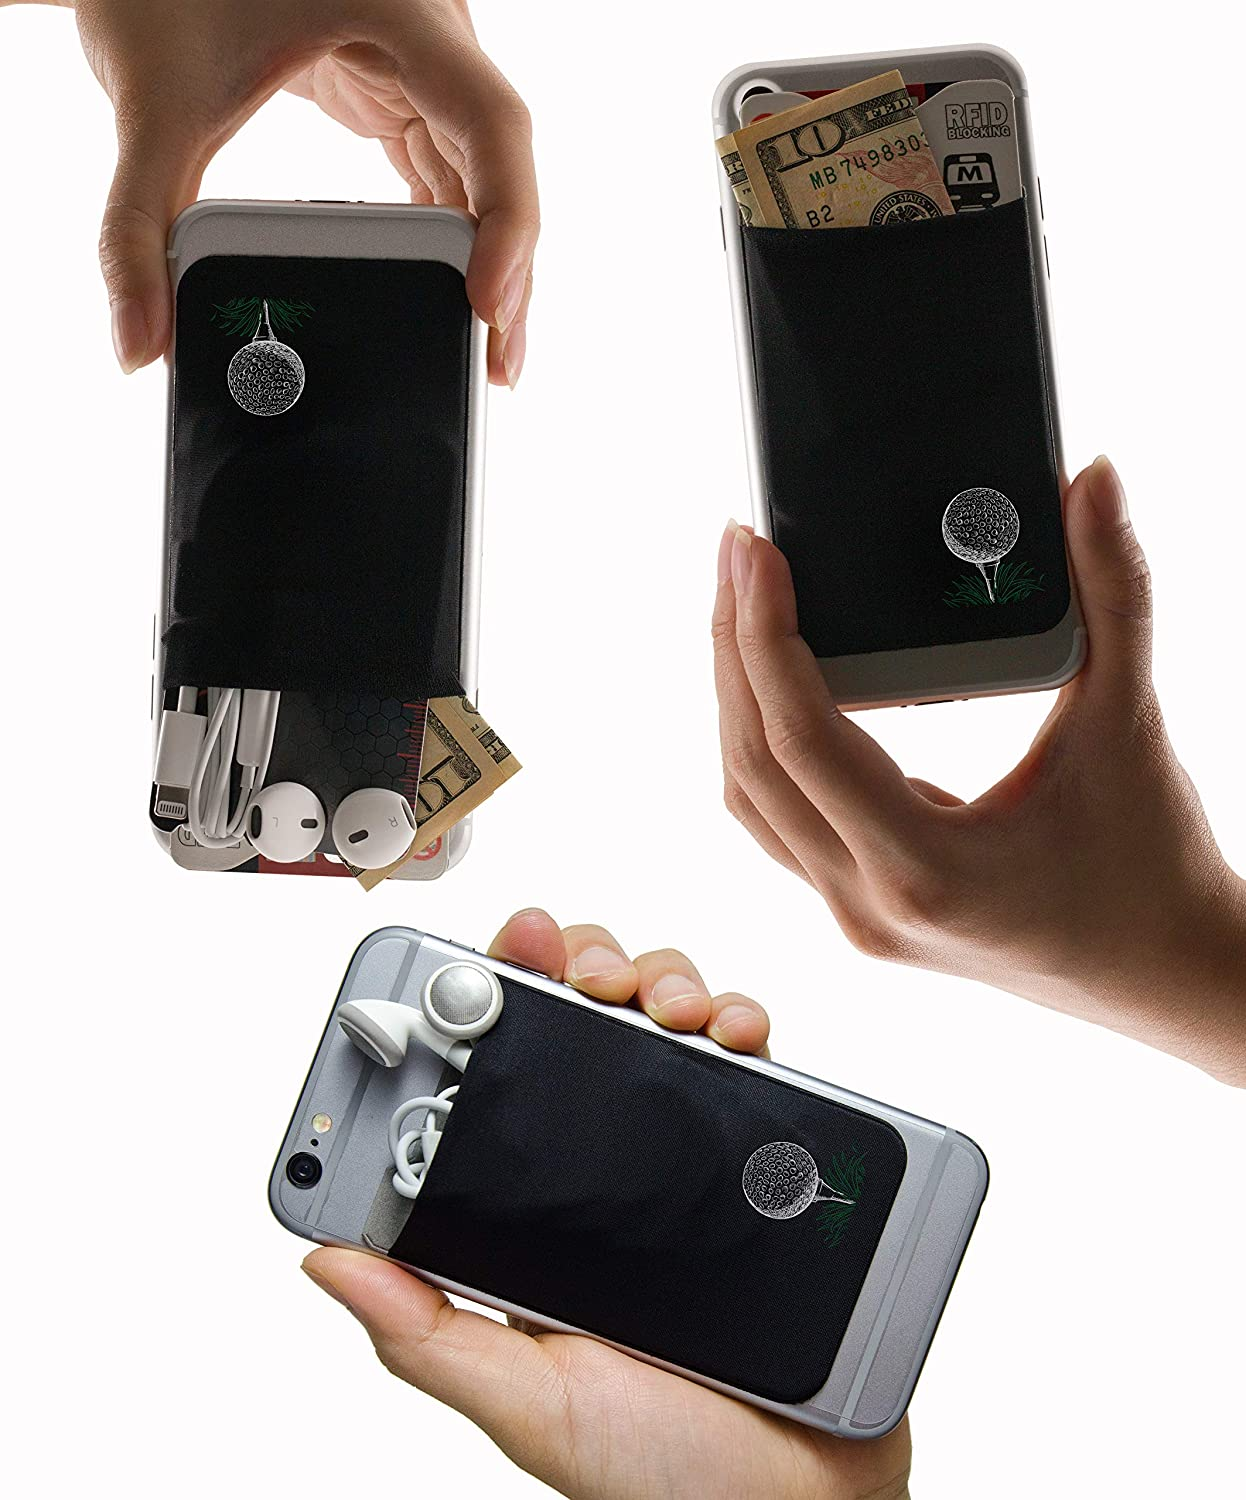 a Stick-On Stretchy Lycra Card Holder Universally fits Most Cell Phones /& Cases Dog Paws Xtra Tall Pocket Totally Covers Credit Cards /& Cash Gecko Adhesive Phone Wallet /& RFID Blocking Sleeve